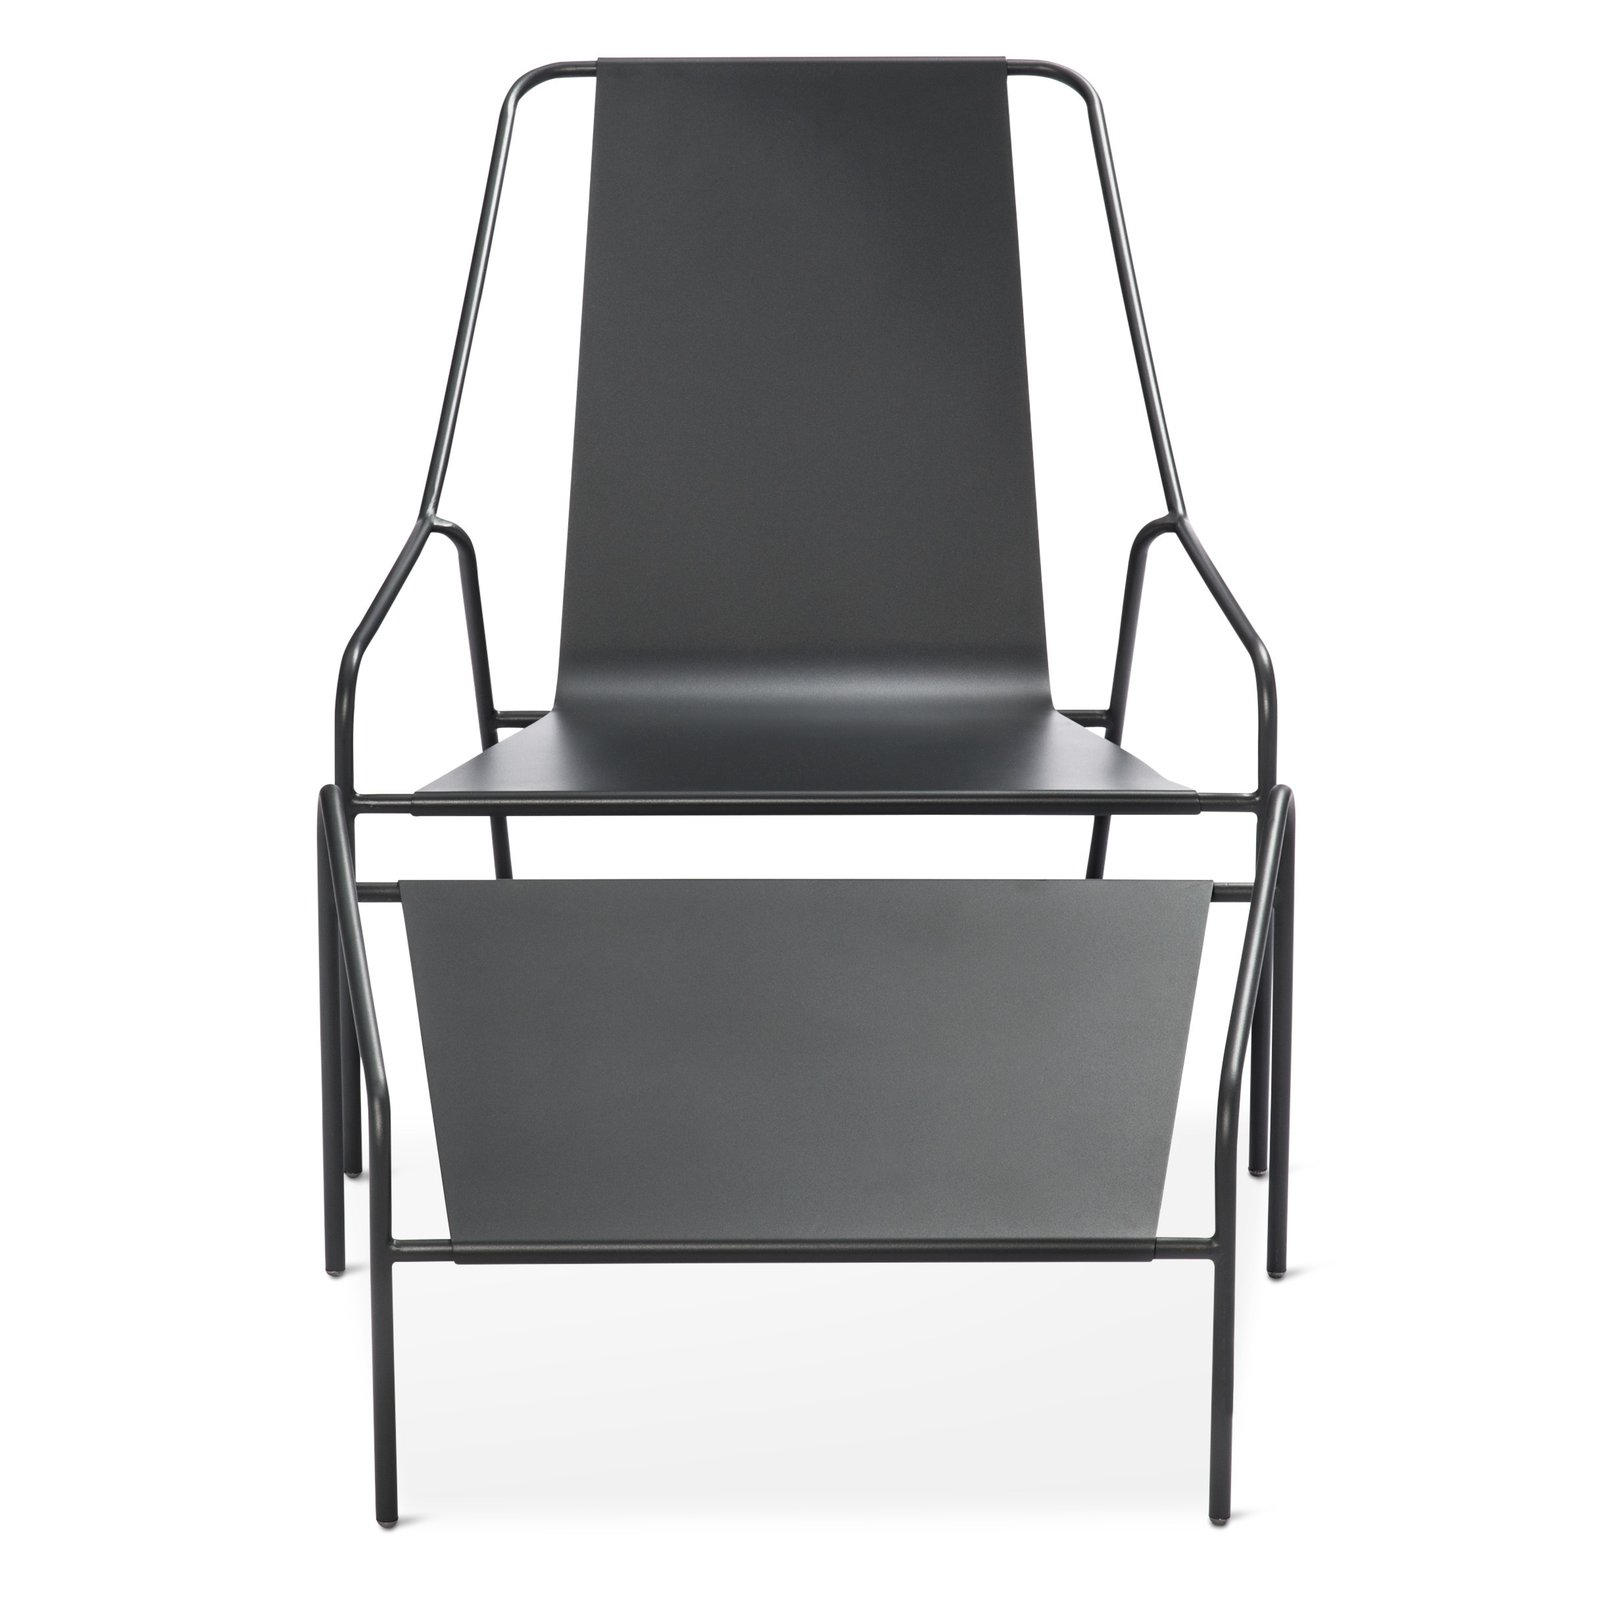 Posture Chair and Ottoman Set, $269.99; available in gray, orange, or white; designed by Chris Deam and Nick Dine for Modern by Dwell Magazine for Target   Photo 14 of 17 in Modern by Dwell Magazine: Outdoor Collection